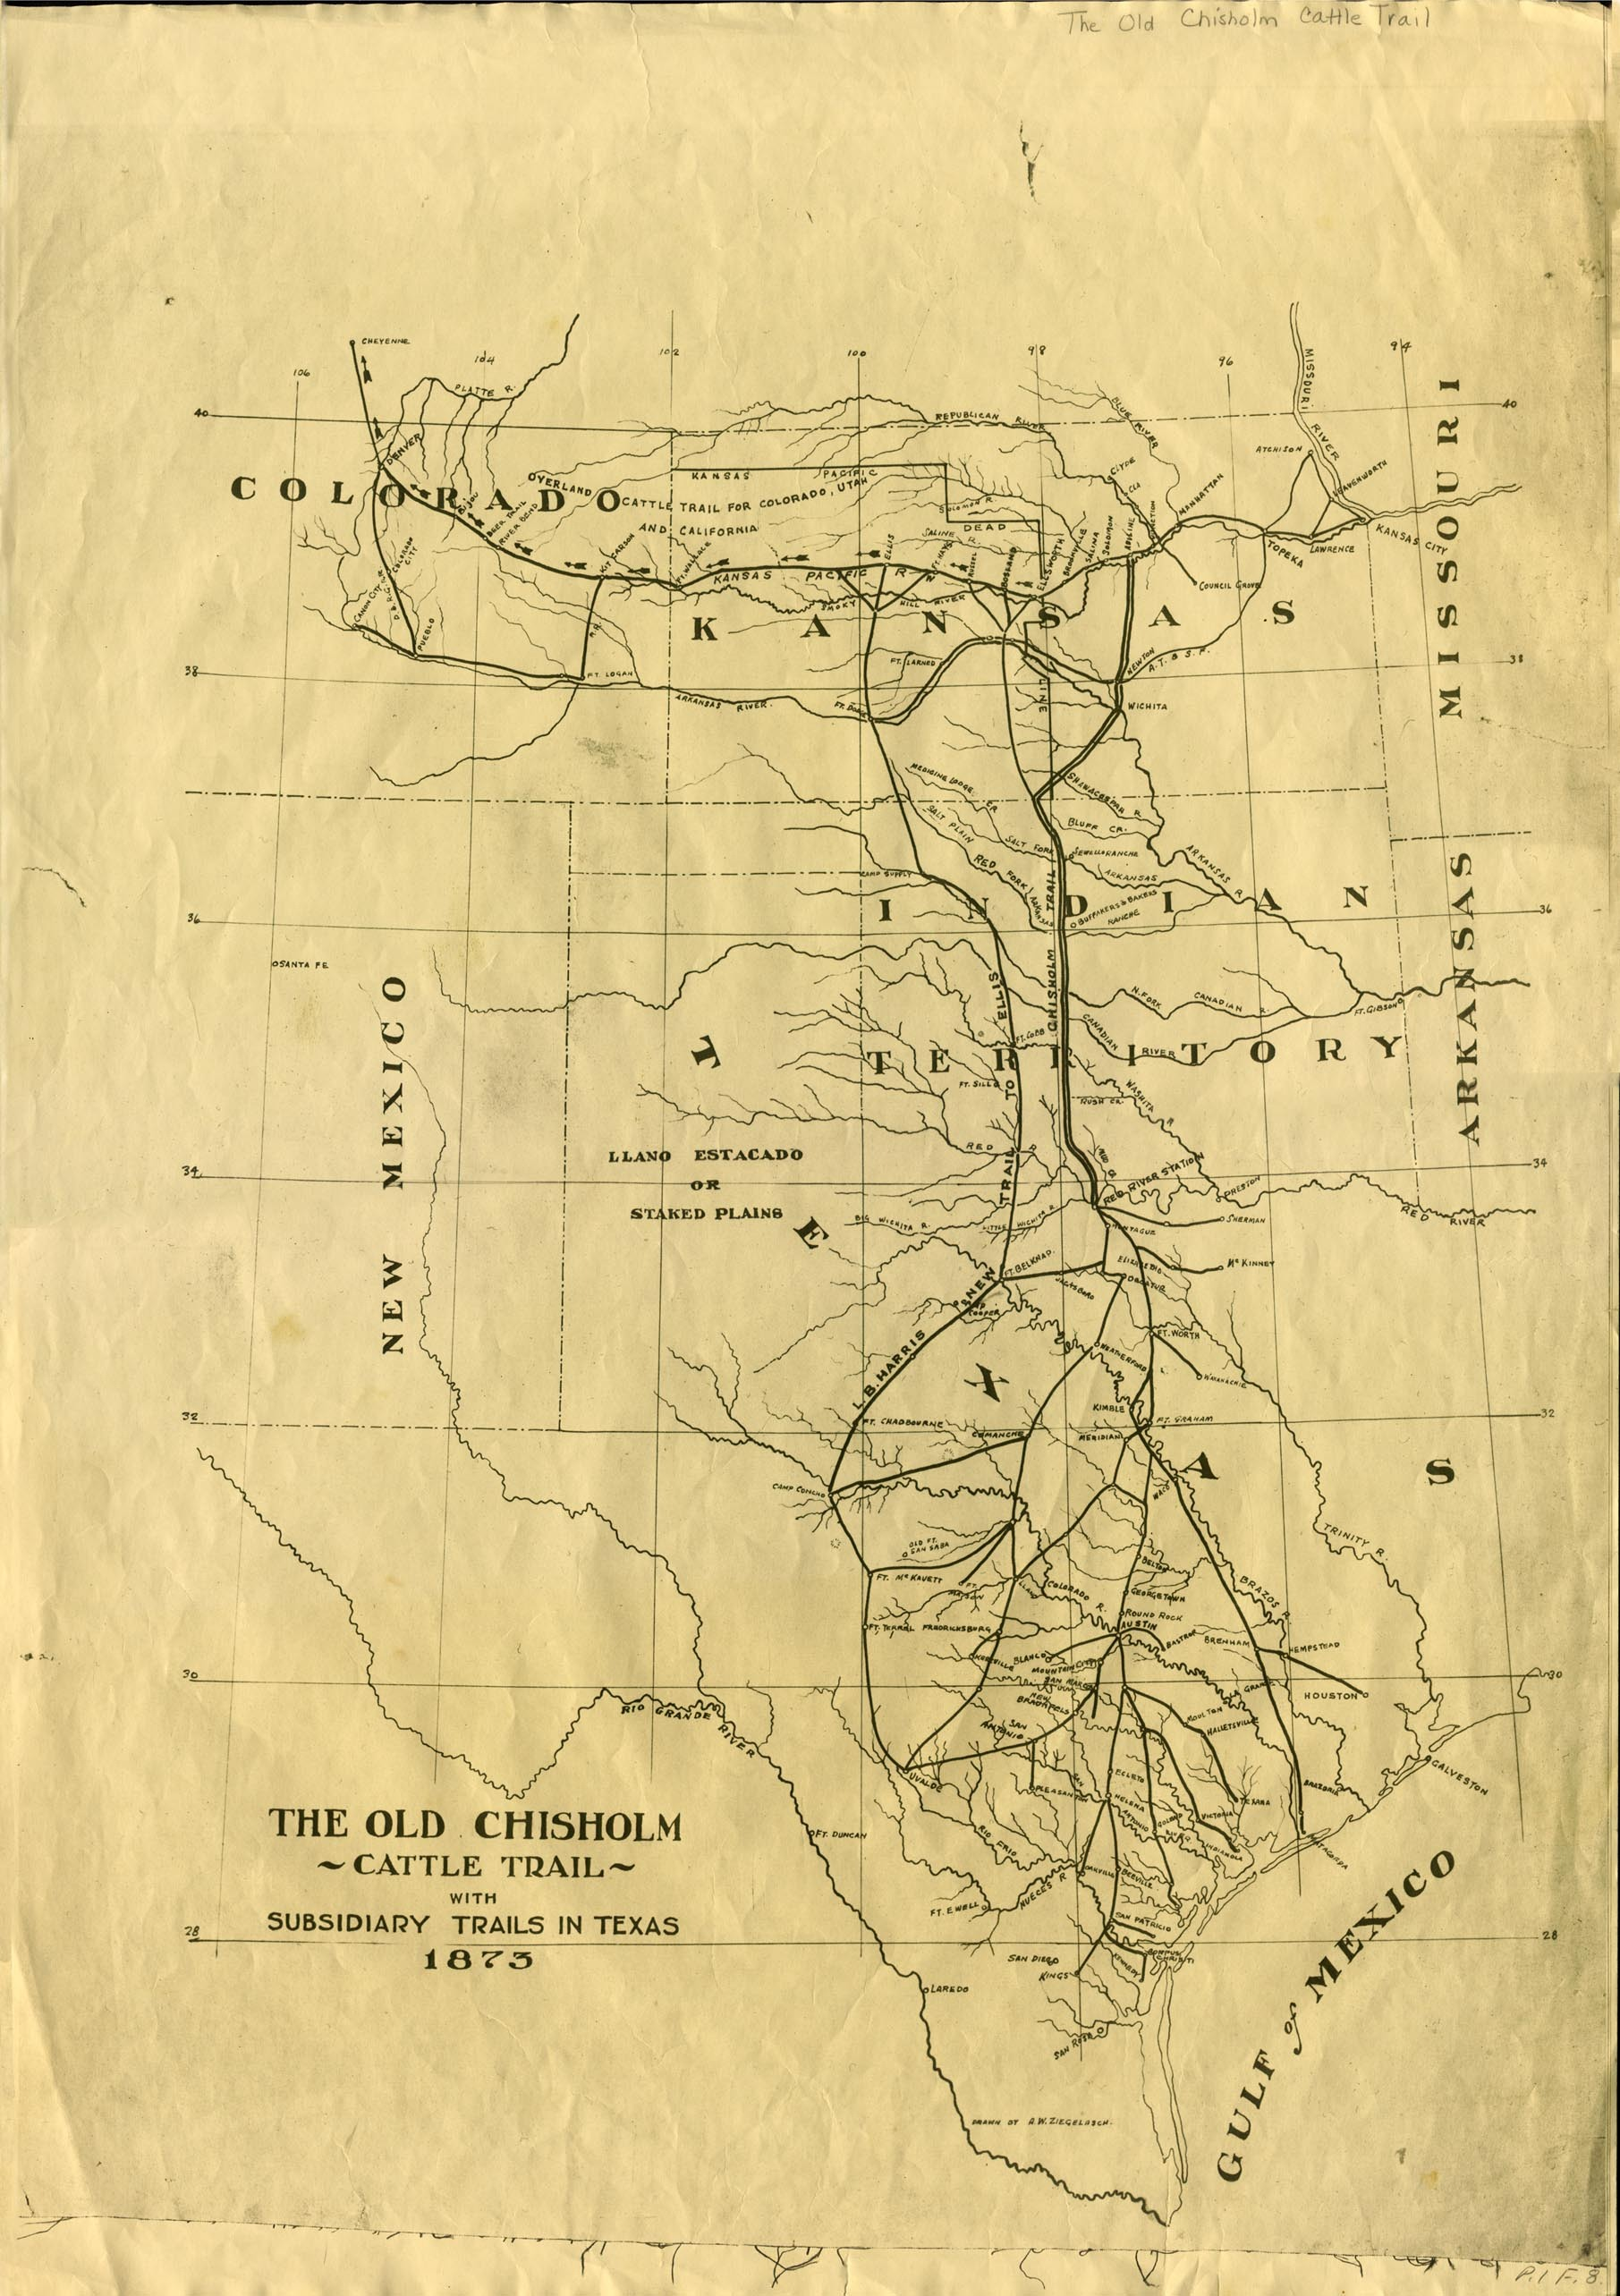 The old Chisholm cattle trail with subsidiary trails in Texas, 1873 / drawn by A. W. Ziegelasch.